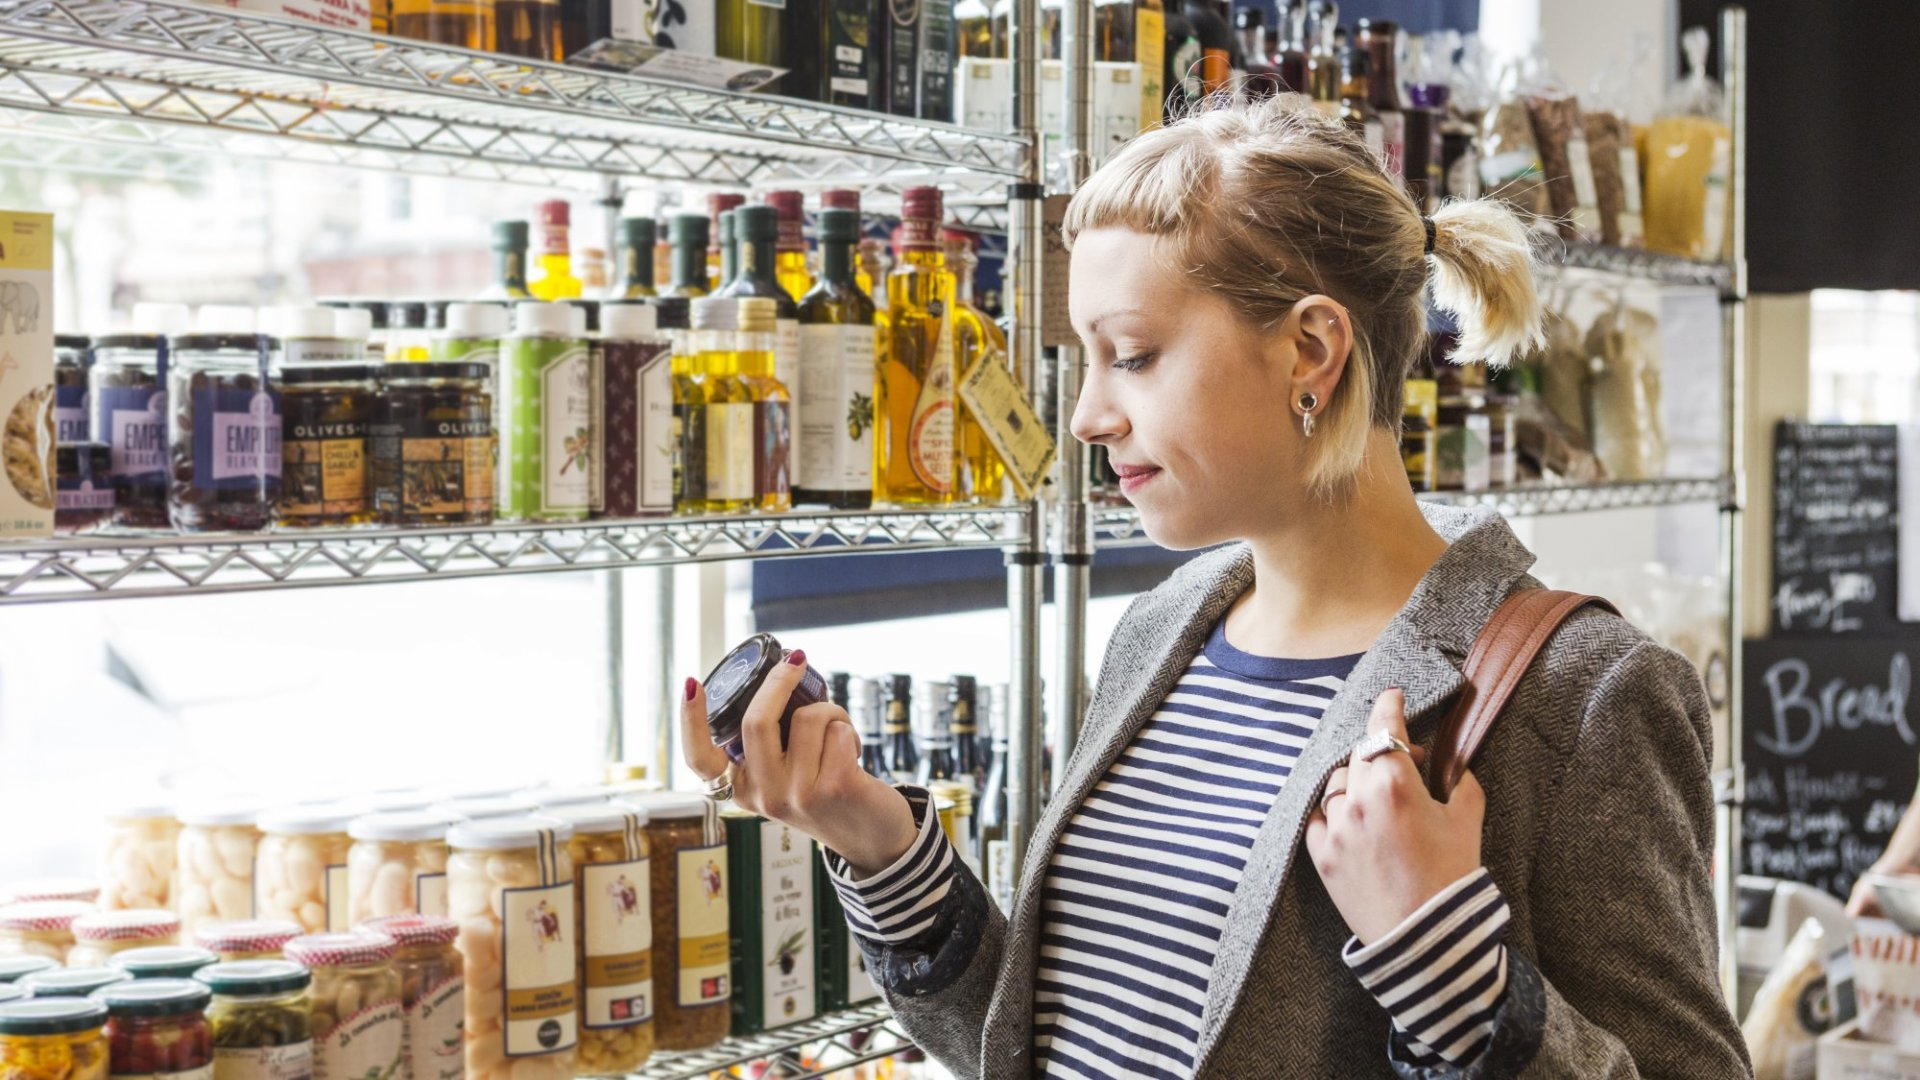 'Gluten Free? Yawn.' And Other Advice From Expert Millennial Marketers